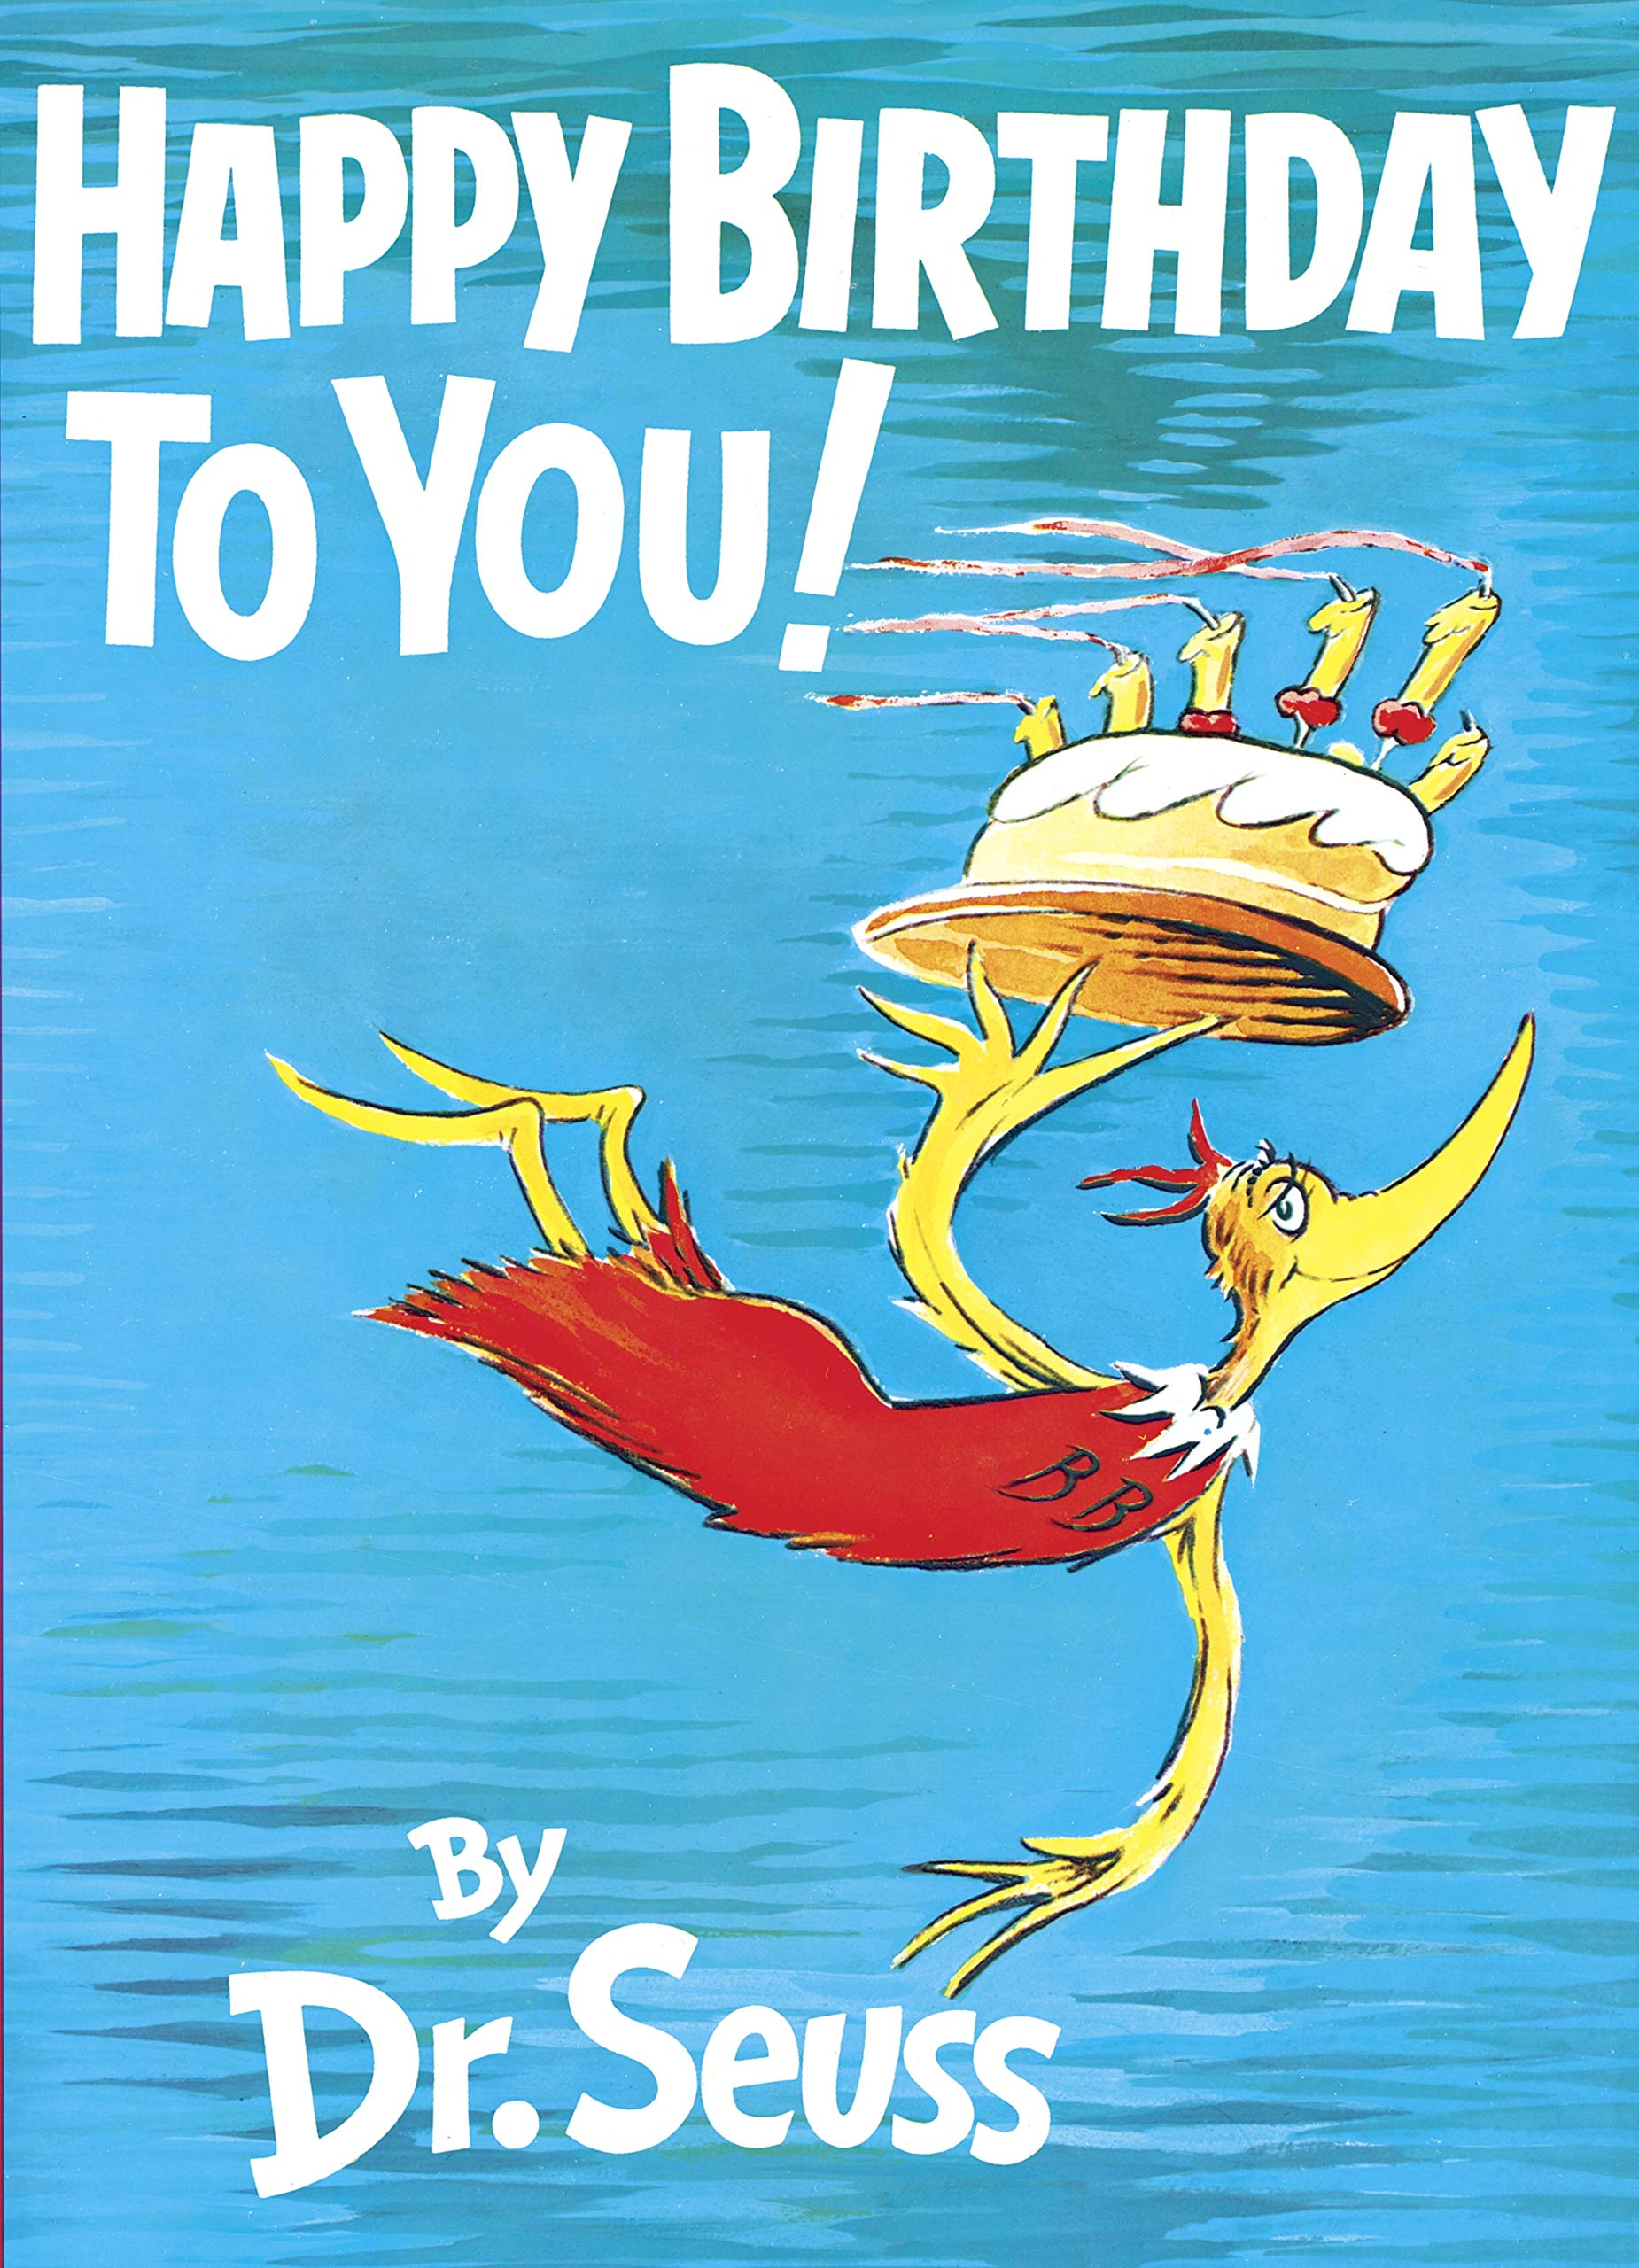 Happy Birthday To You (Hardcover) By Dr. Seuss Only $11.00 (Reg $16.99) + Free Store Pickup at Target.com!